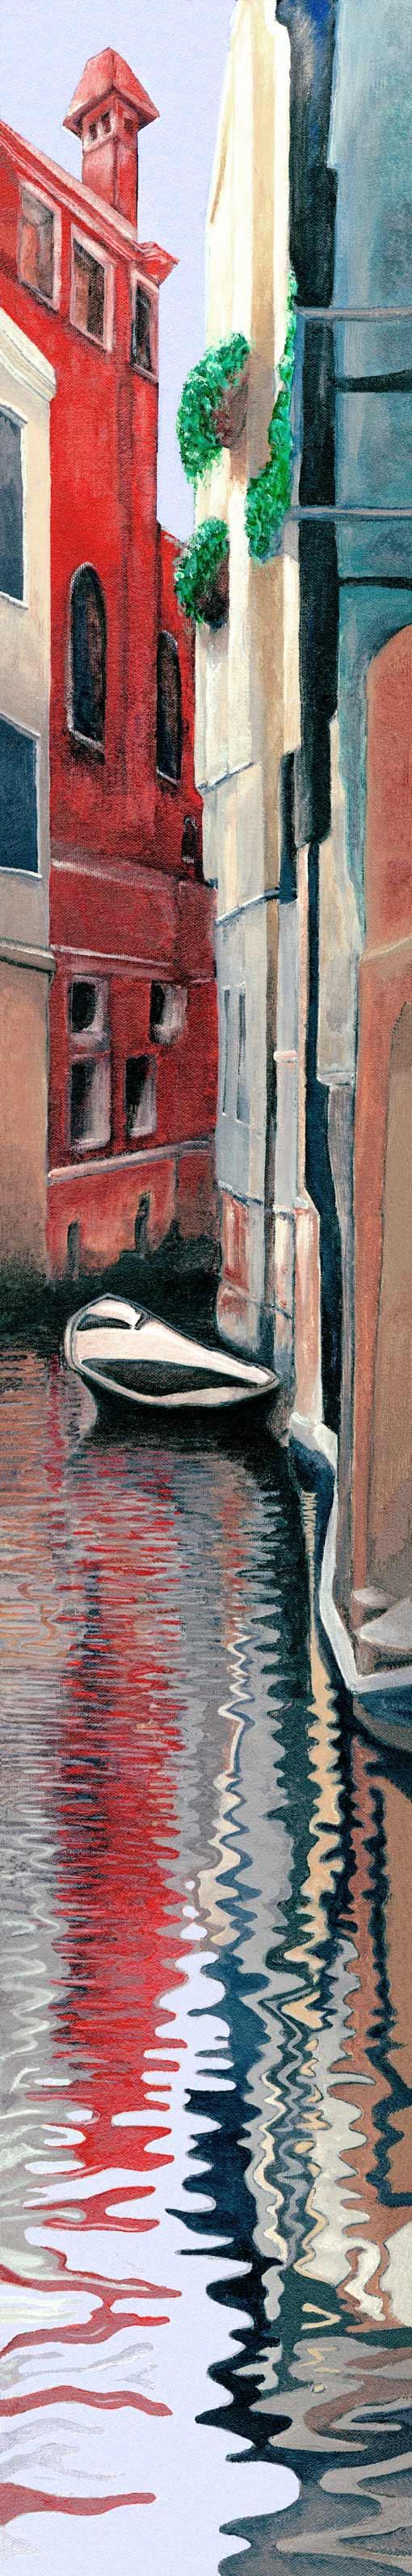 """Venice Daydreaming • Framed 6x38"""" • Original Acrylic Painting on Canvas"""